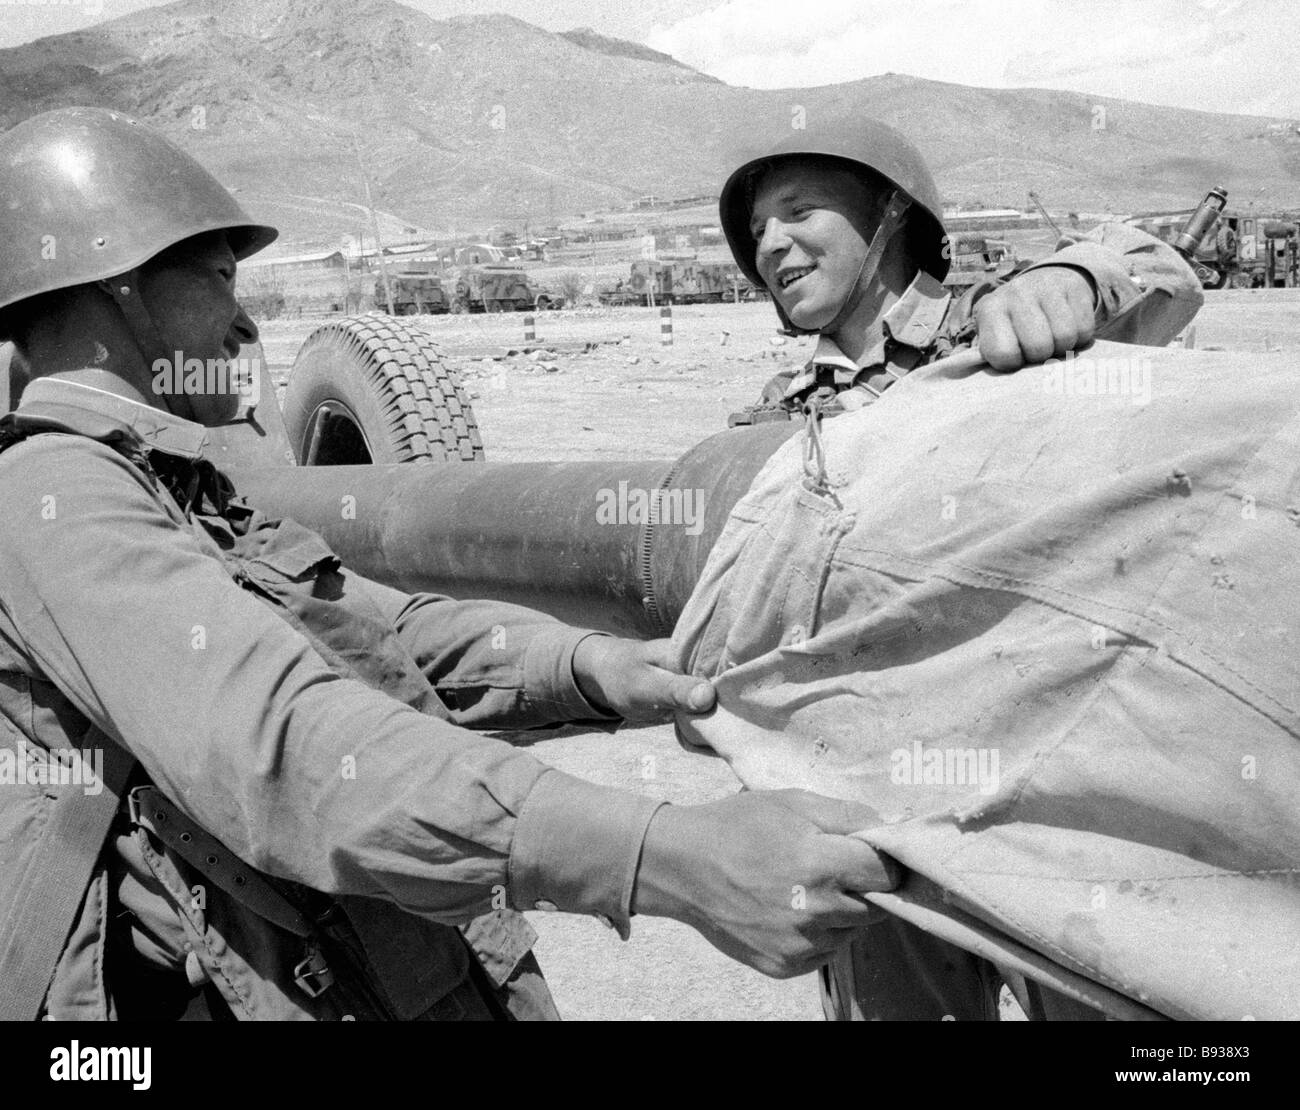 Soldiers put the sleeve onto the gun tune Withdrawal of limited contingent of Soviet troops from Afghanistan - Stock Image